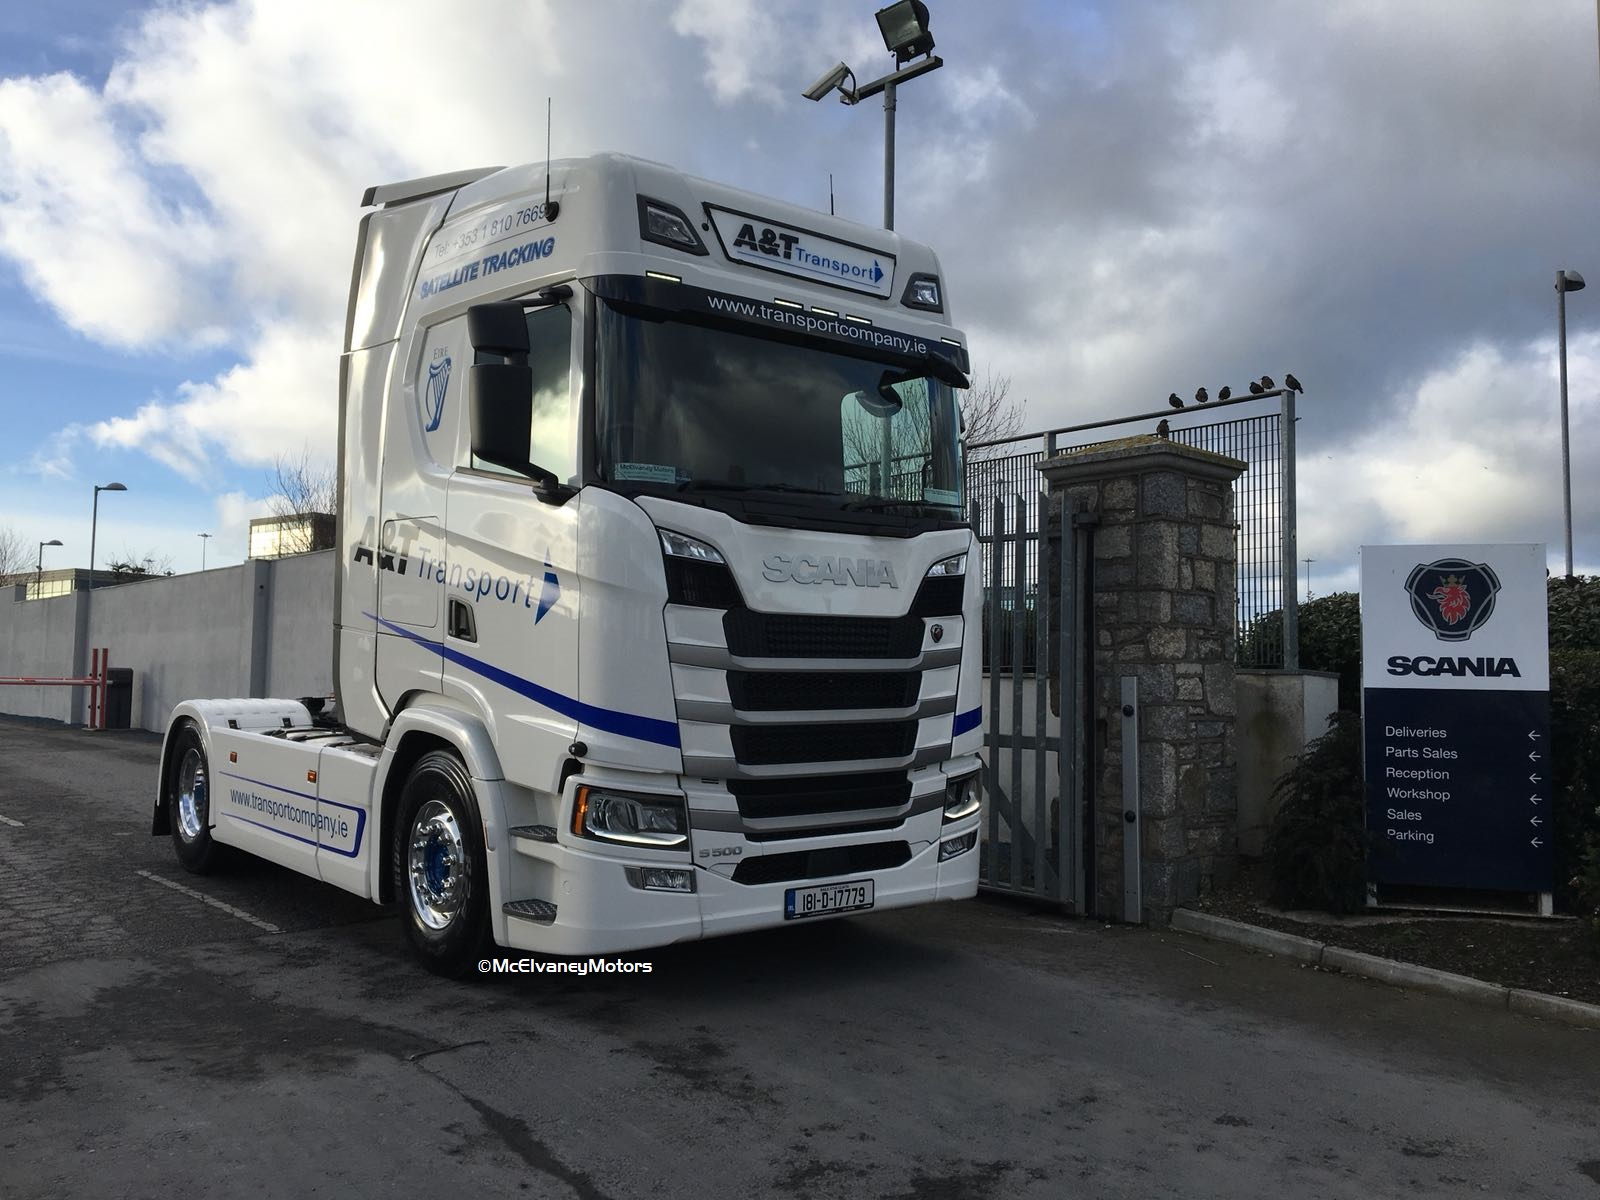 Stunning New S500 for A&T Transport